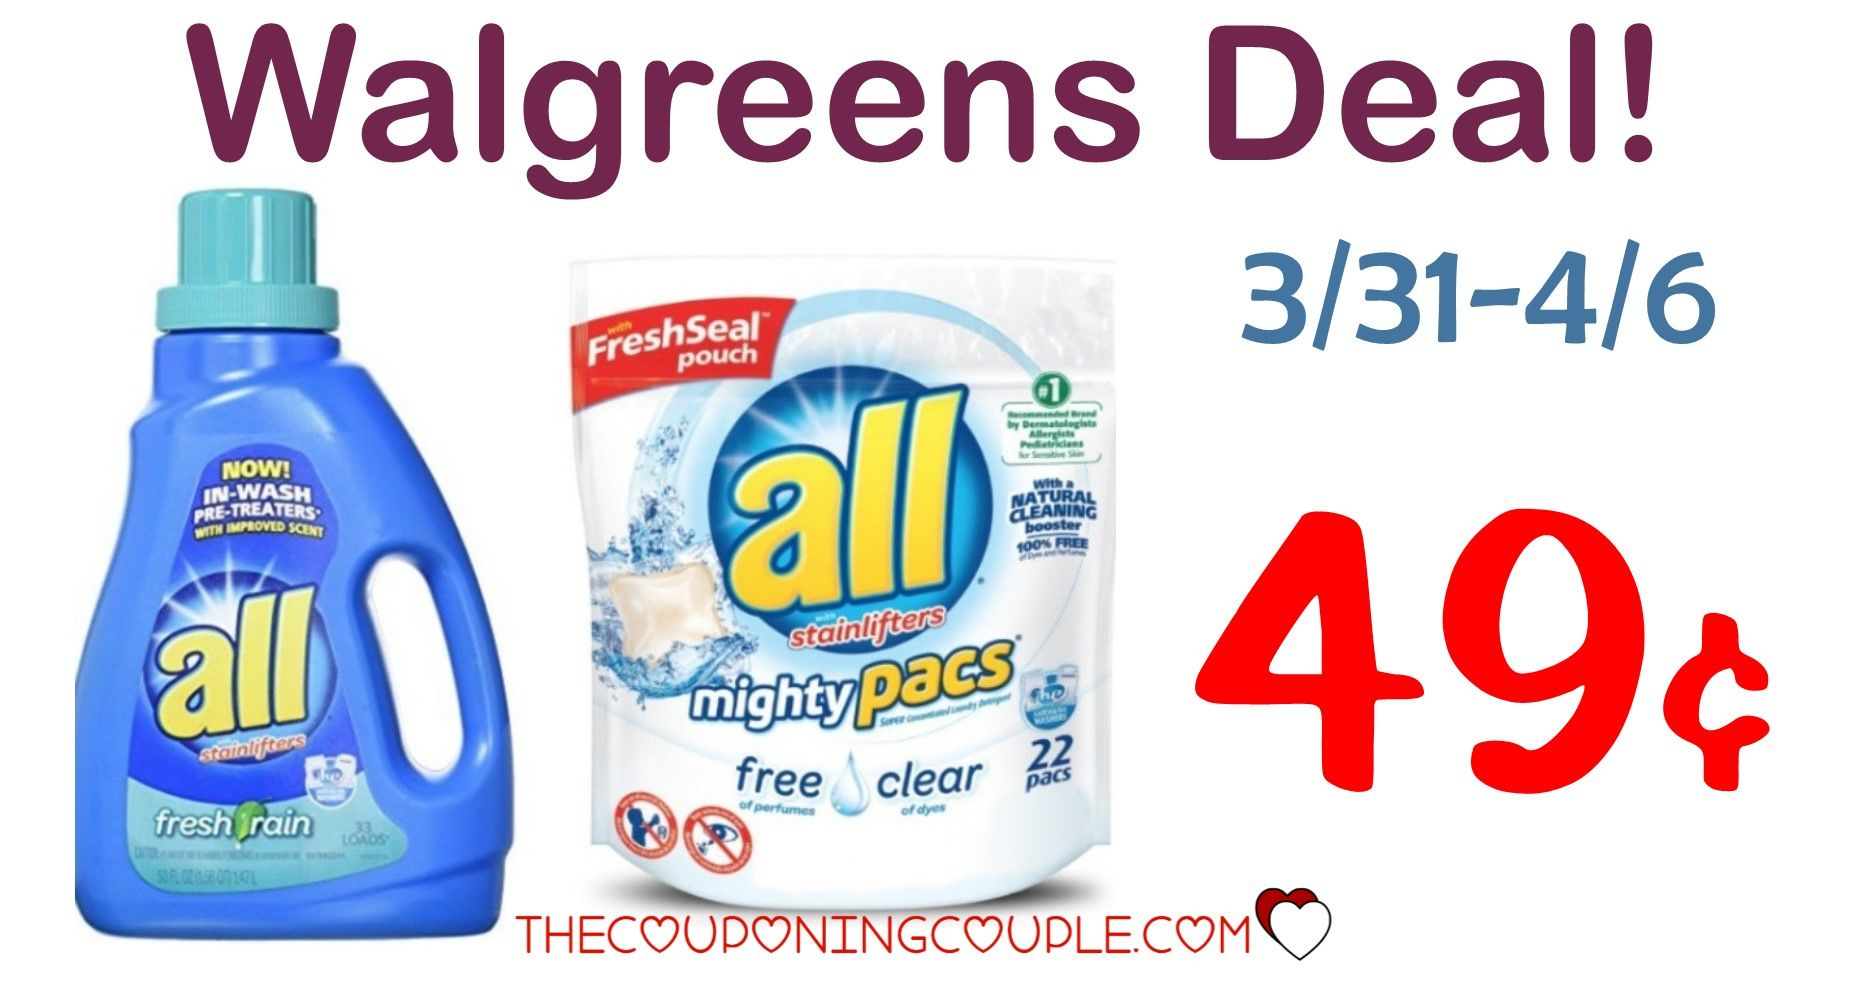 All Laundry Detergent Deal 1 99 At Cvs Walgreens And Rite Aid